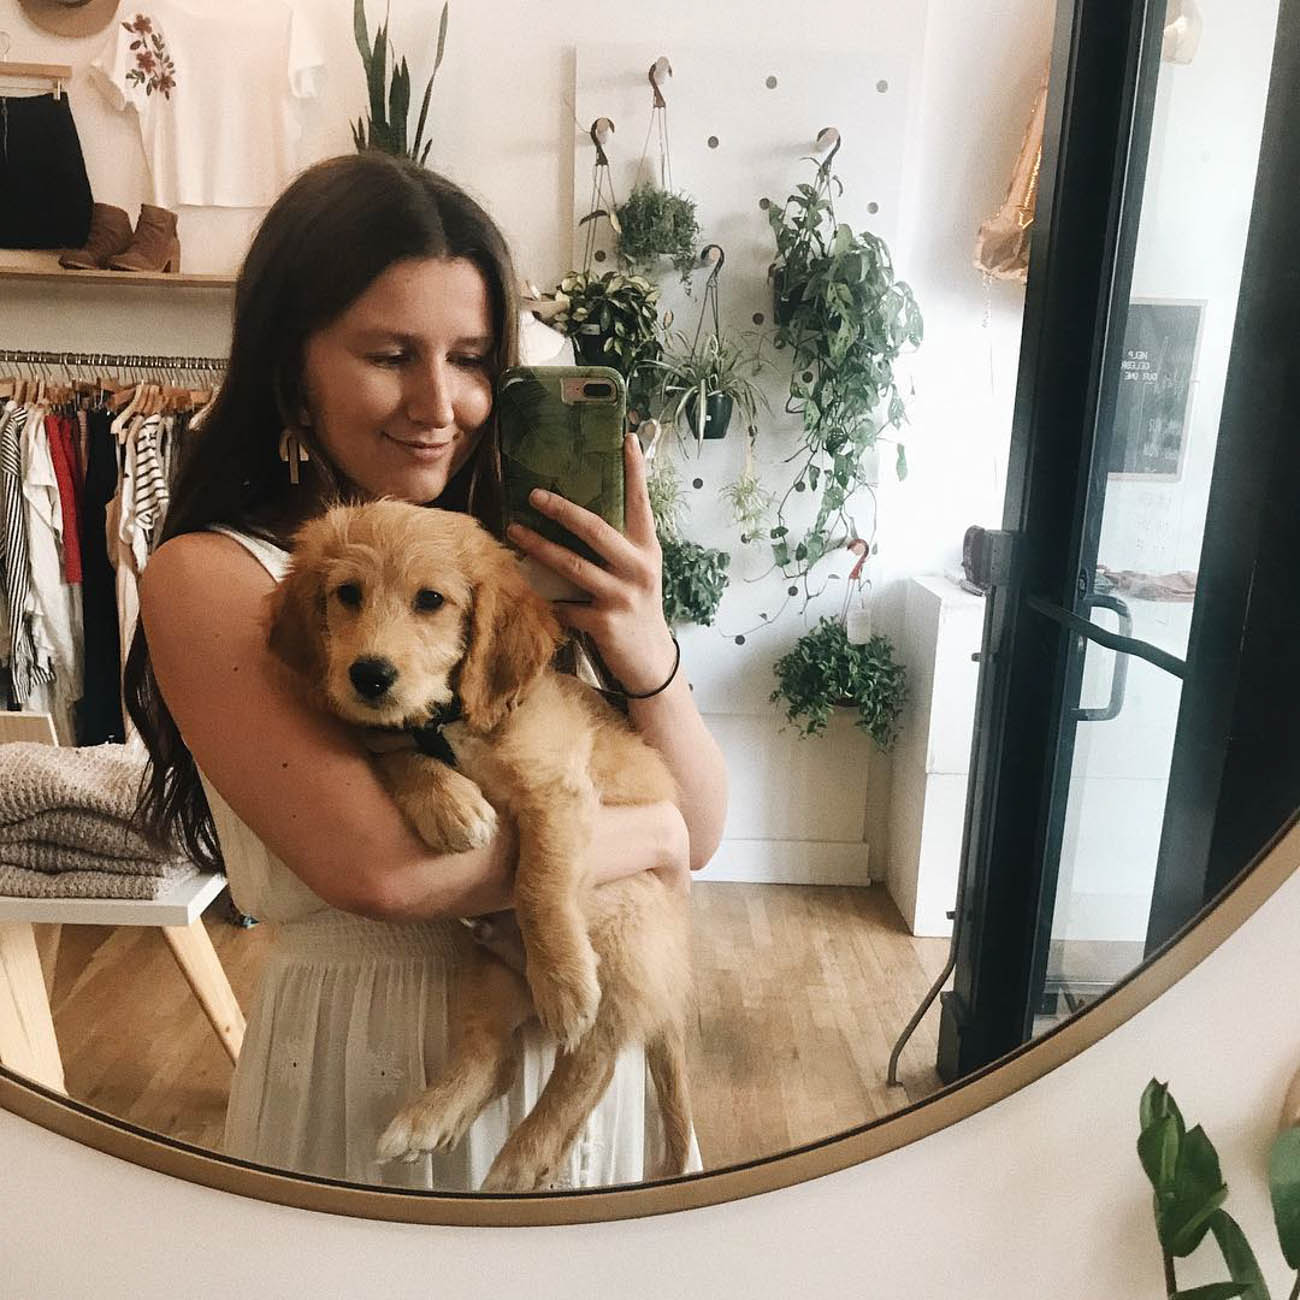 Milo is a mini Goldendoodle who likes to greet customers at his mom's—Anna Steffen's—OTR boutique, The Native One. / Image courtesy of Instagram user @littlenuggetmilo // Published: 11.28.18